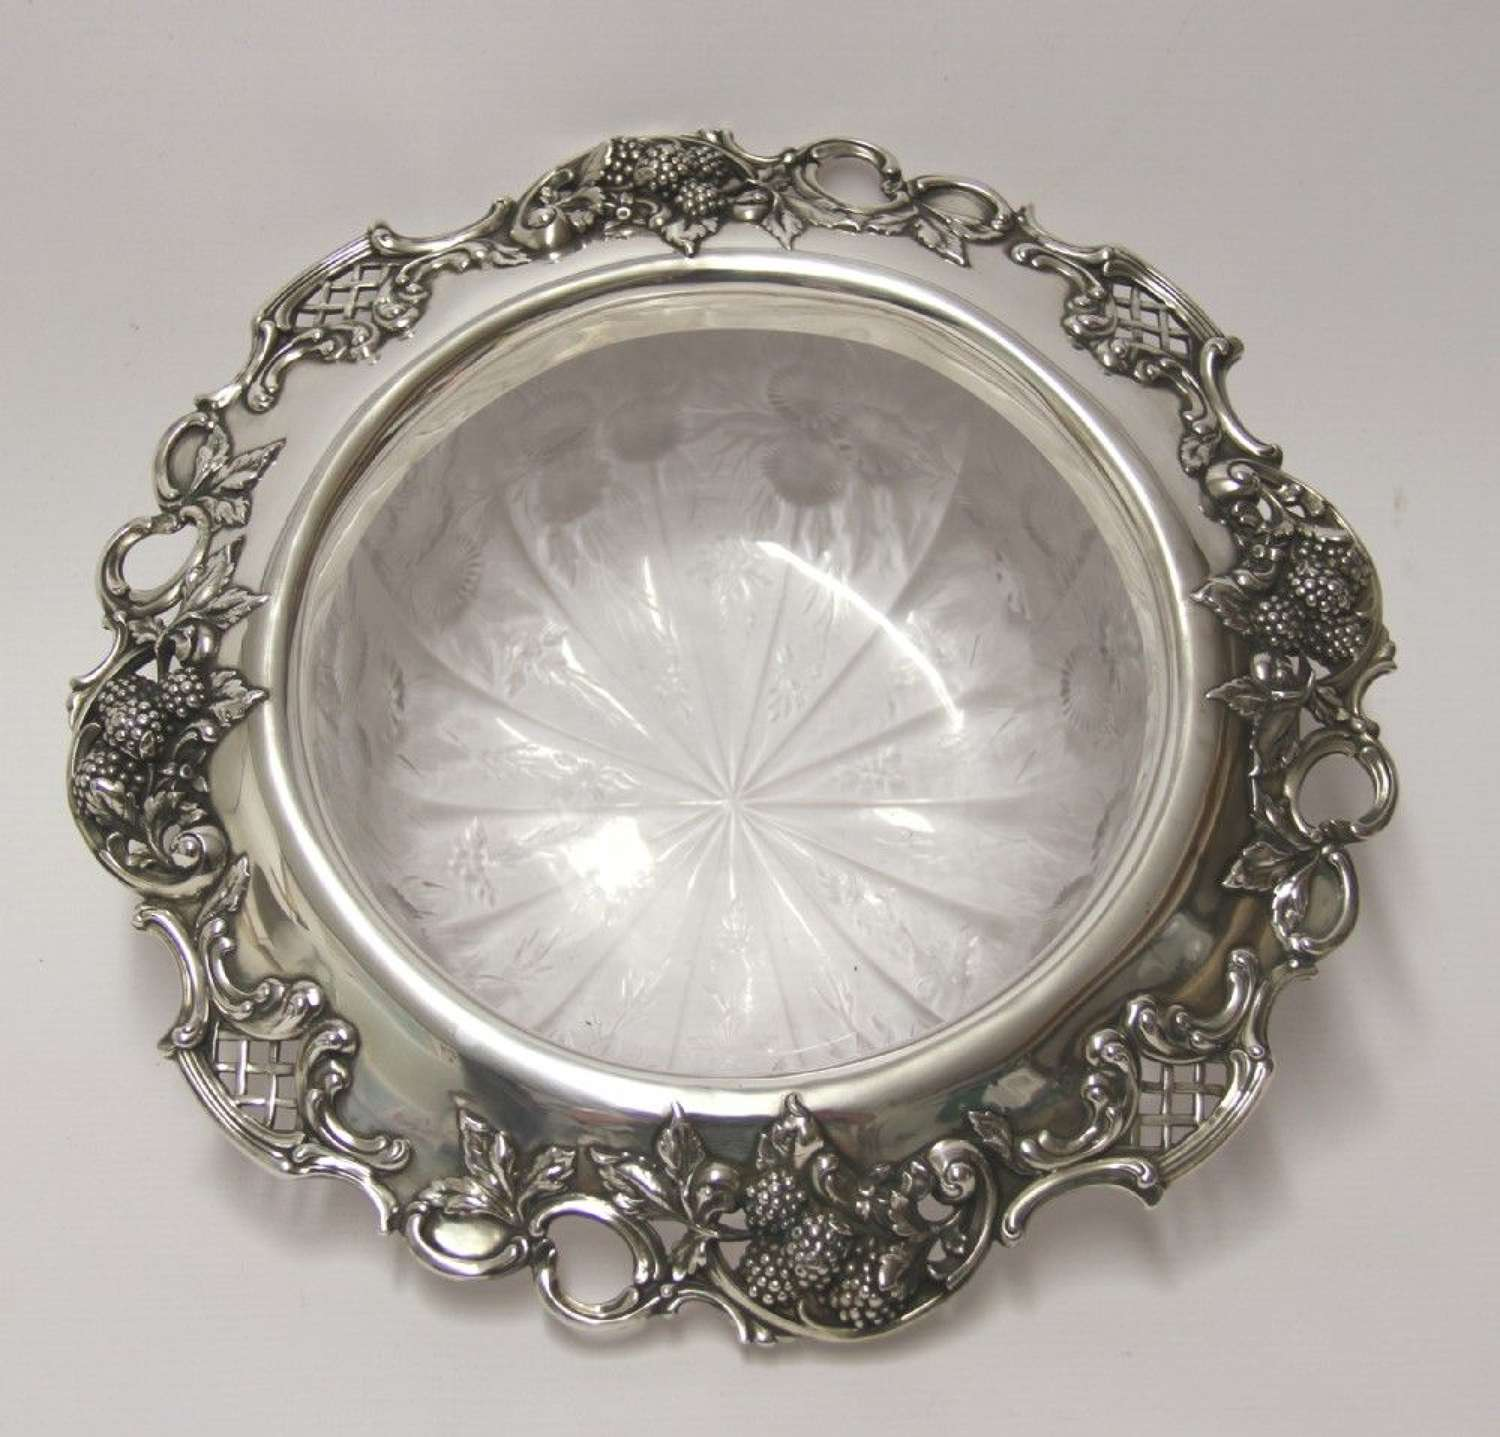 A Tiffany & Co Silver And Glass Bowl ,1910